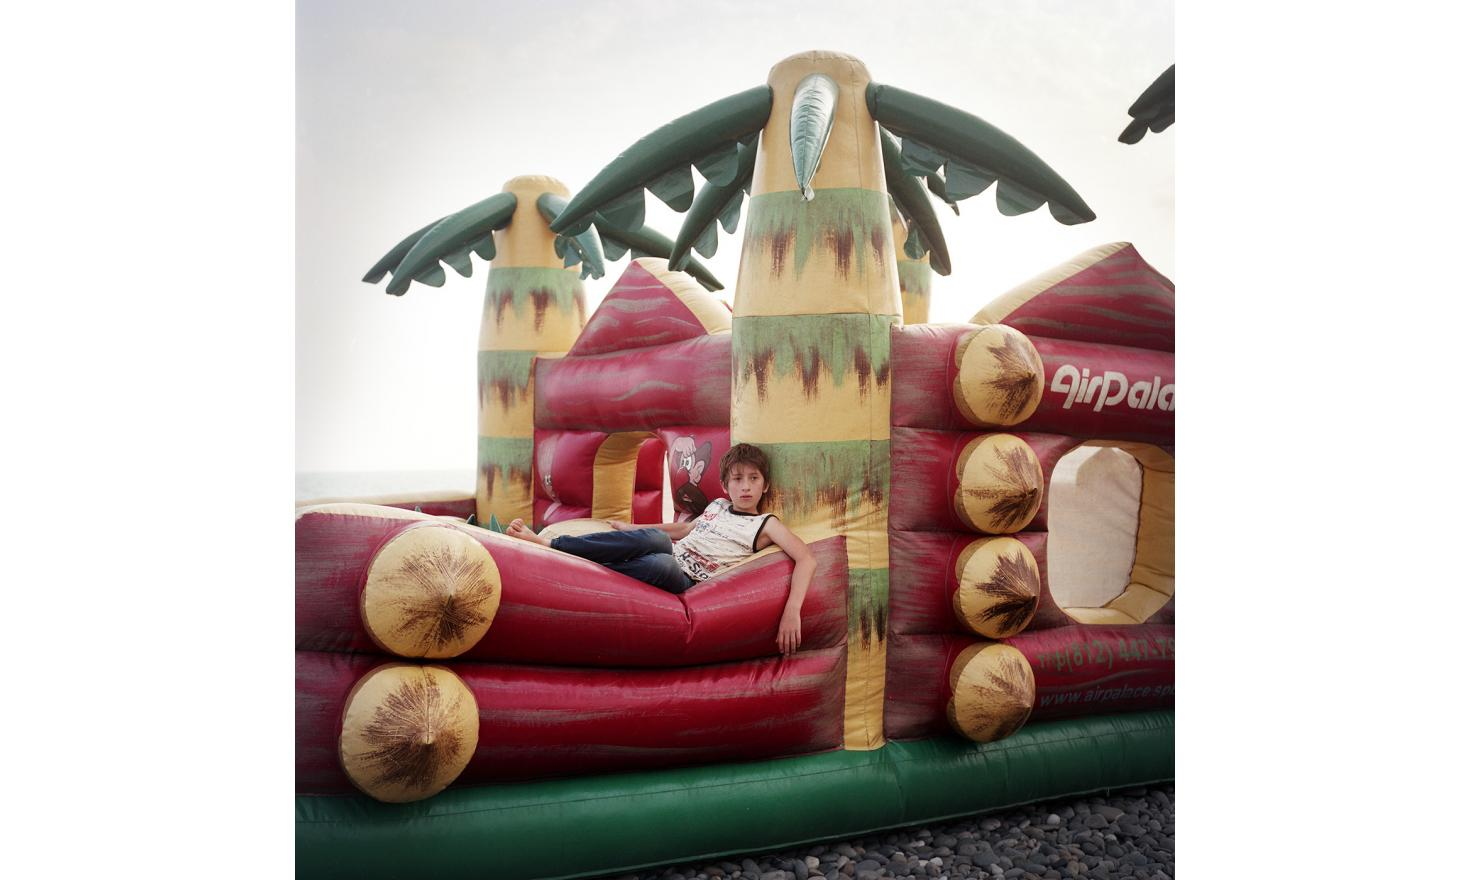 A young boy on a bouncy castle on Sukhum(i) Beach.